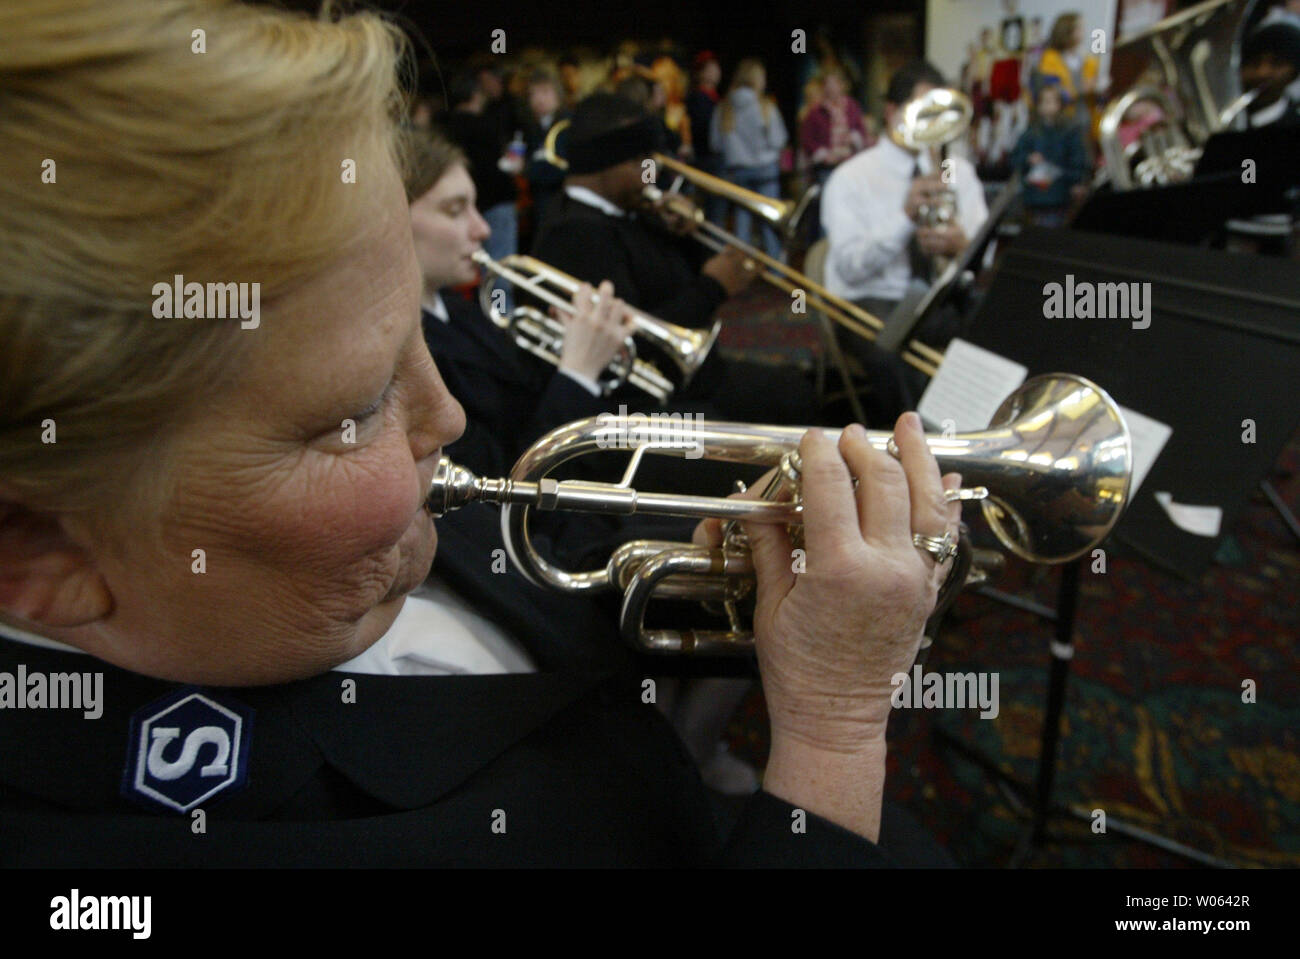 Salvation Army band member Linda Cooper plays her trumpet during the Wehrenberg Cans Film Festival at the Des Peres 14 Cine in Des Peres, Mo on December 3, 2005. Movie goers exchange canned goods for a movie ticket with the food going to feed the needy served by the St. Louis area Salvation Army. Last year the Wehrenberg Cans Film Festival yeilded 254 thousand cans in six hours. (UPI Photo/Bill Greenblatt) Stock Photo